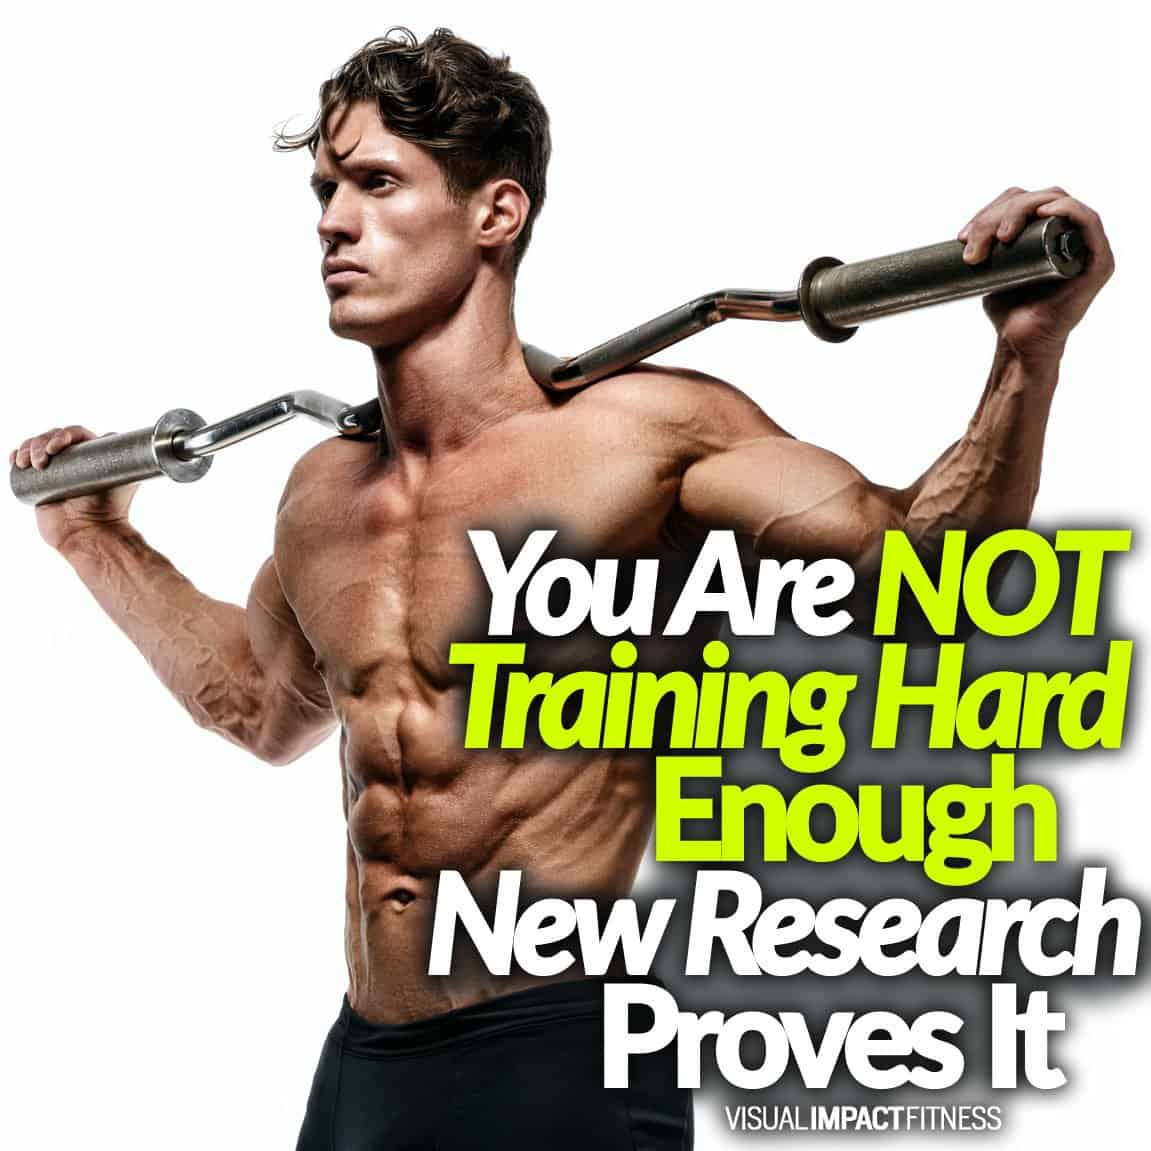 You Are NOT Training Hard Enough (New Research Proves It)